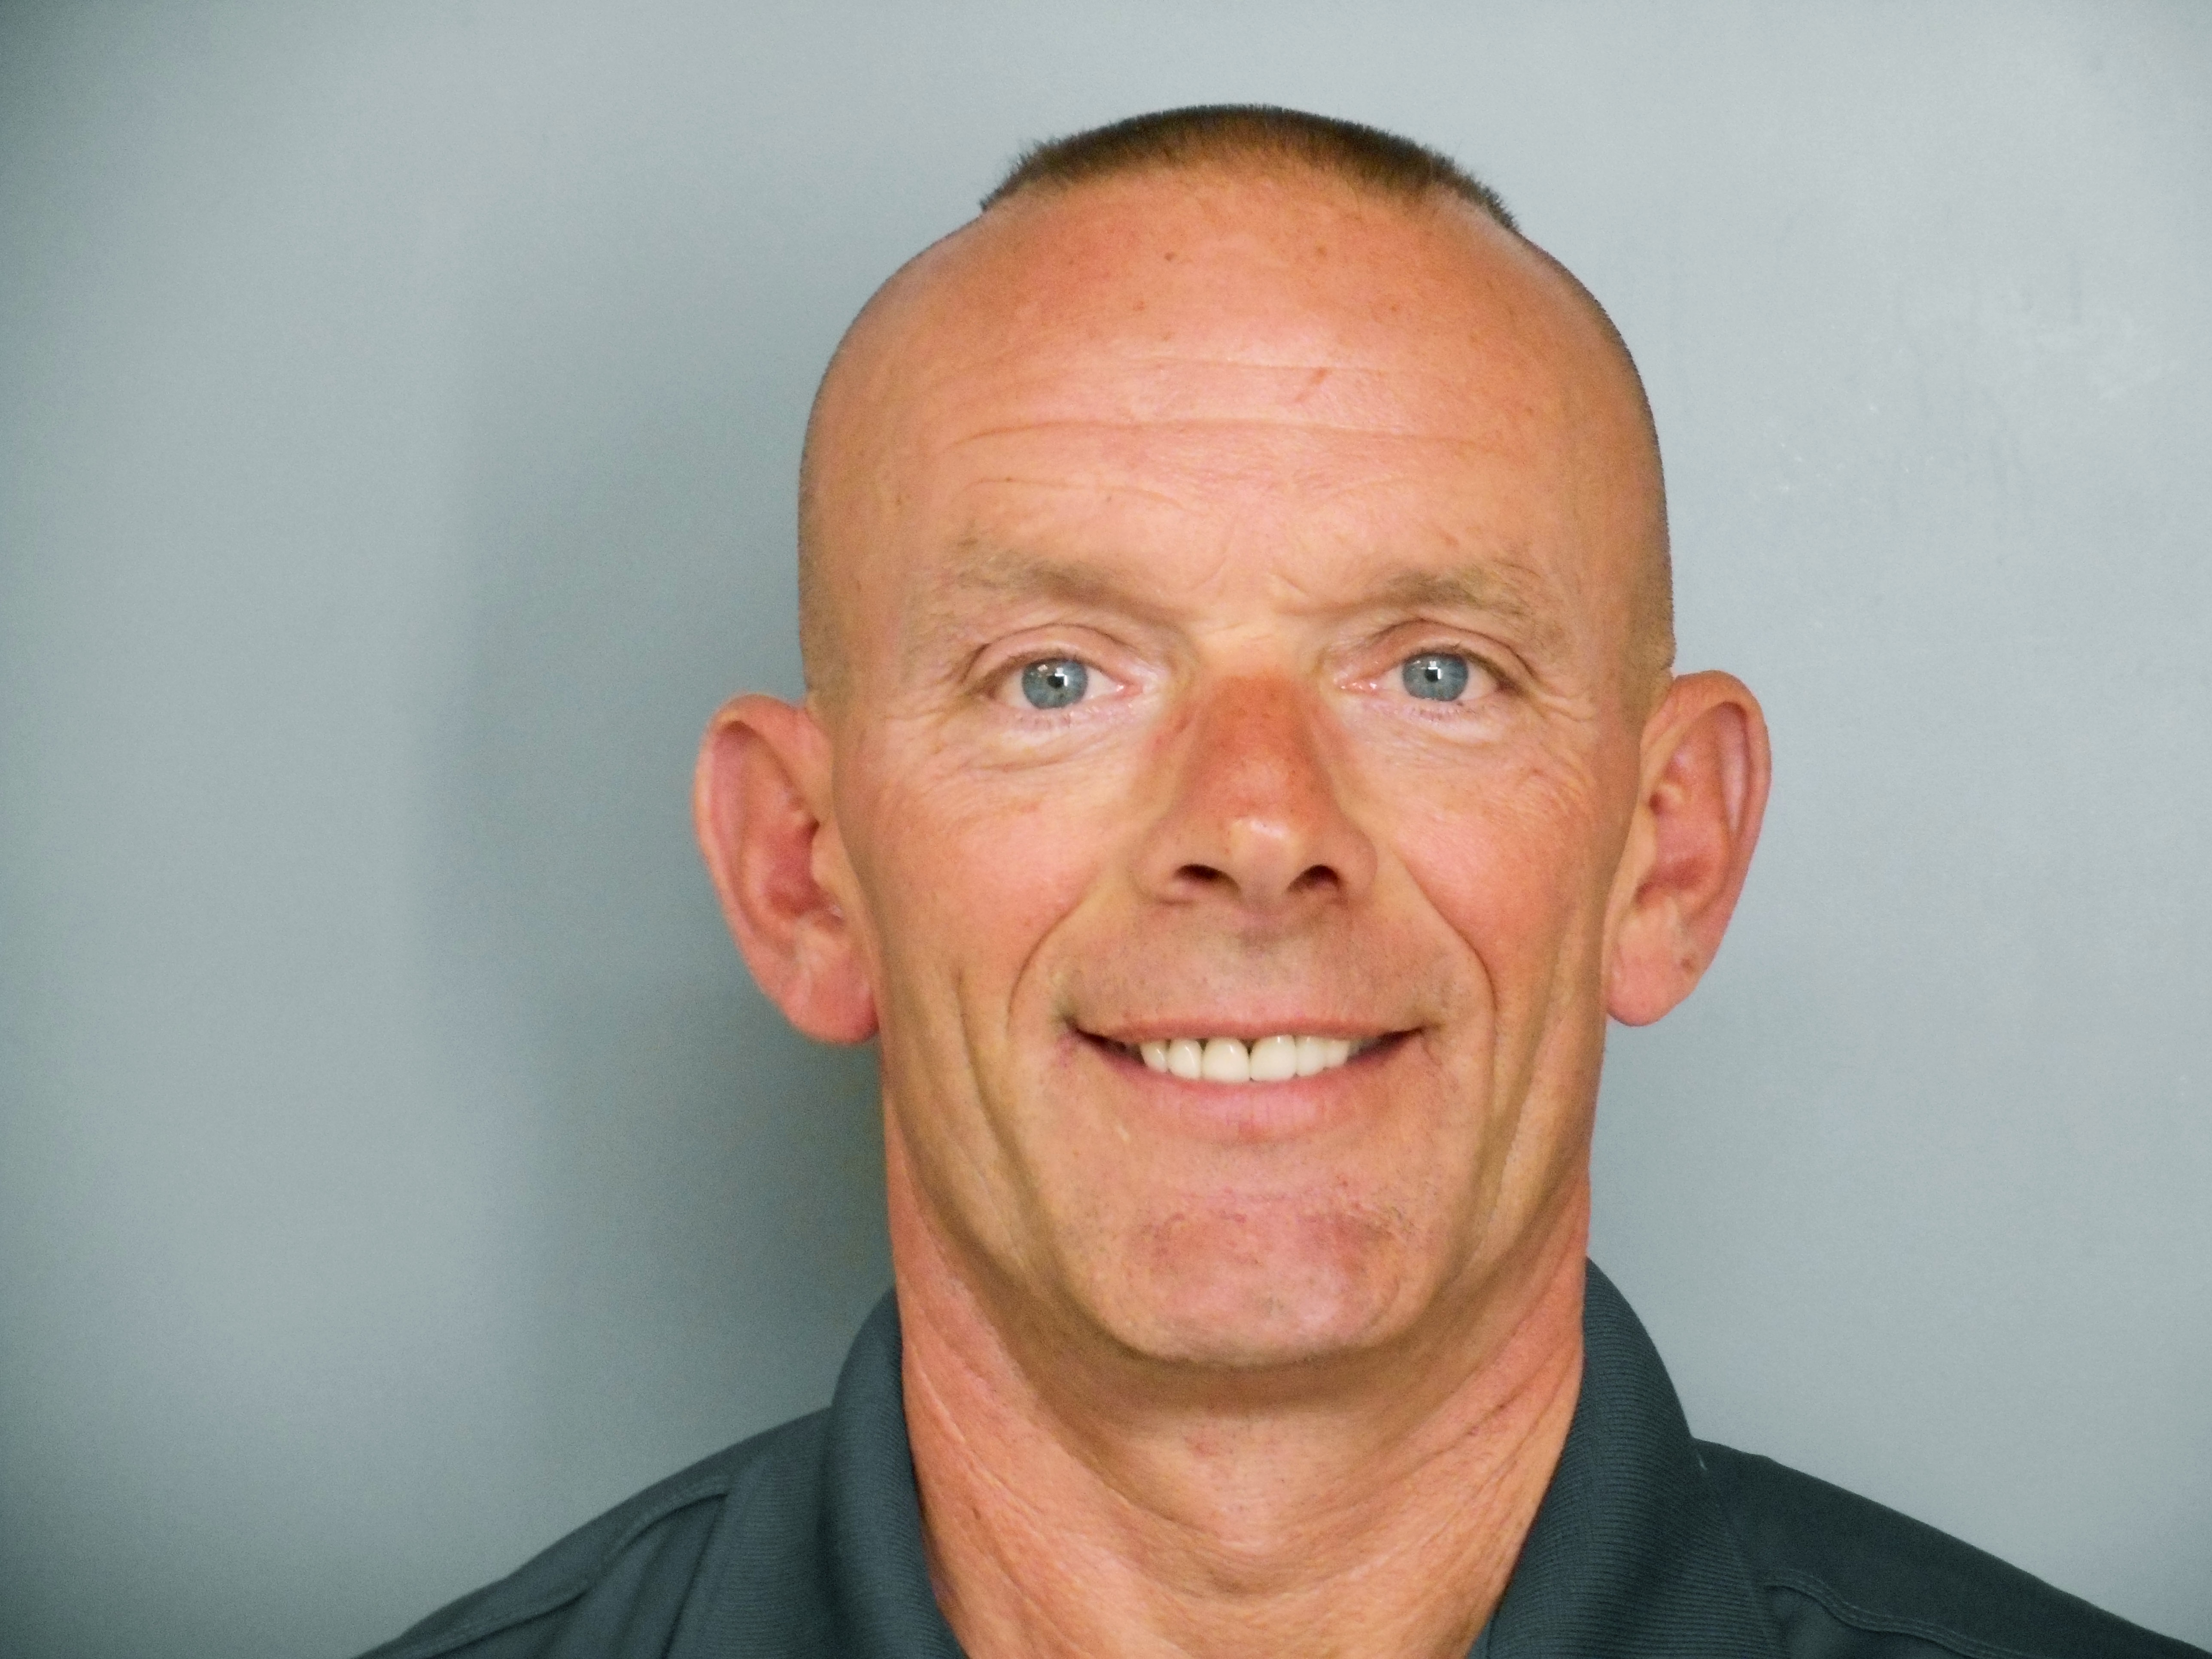 This undated file photo provided by the Fox Lake Police Department shows Lt. Charles Joseph Gliniewicz, who was fatally shot in Fox Lake, Ill in Sept. 2015.